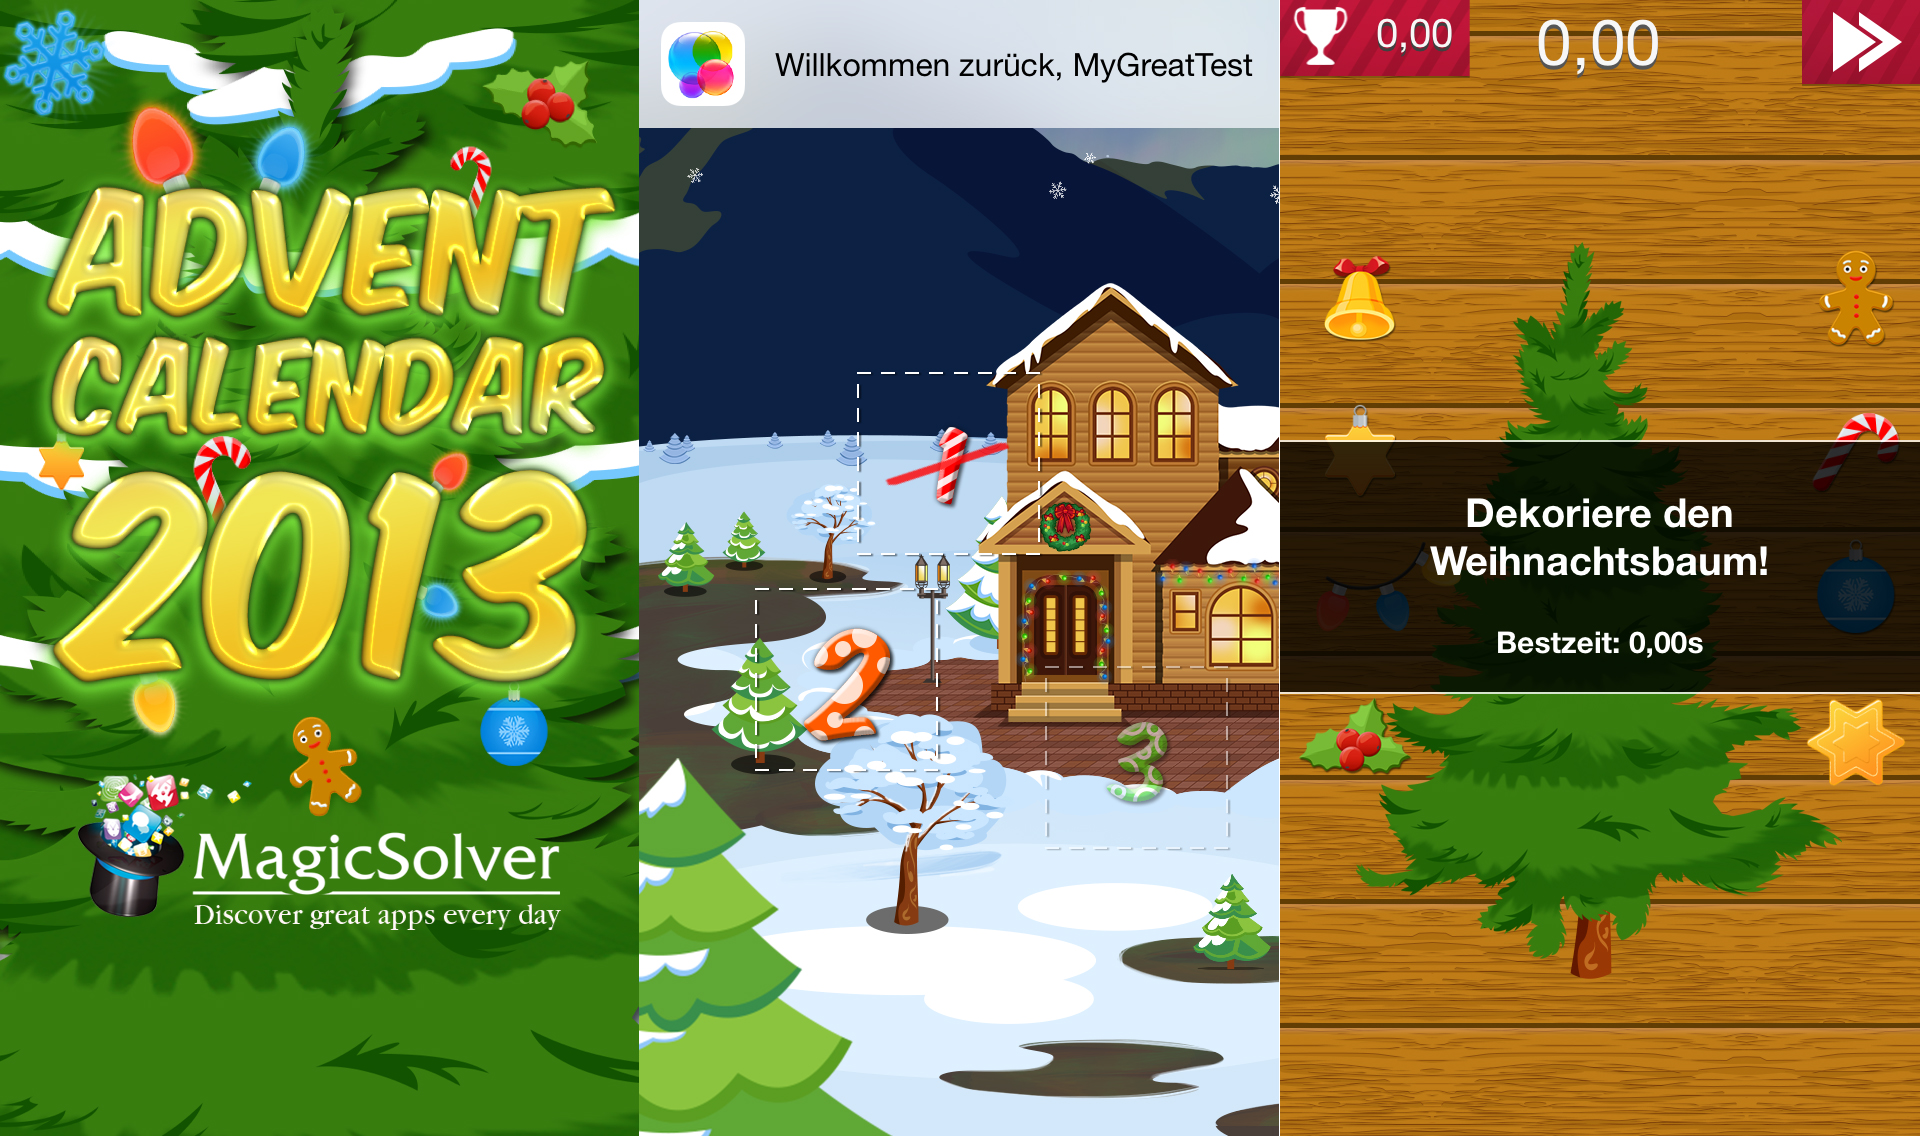 Adventskalender 2013 - Review von Hack4Life - Review - App - kostenlos - download - appstore - MyGreatTest - GameCenter